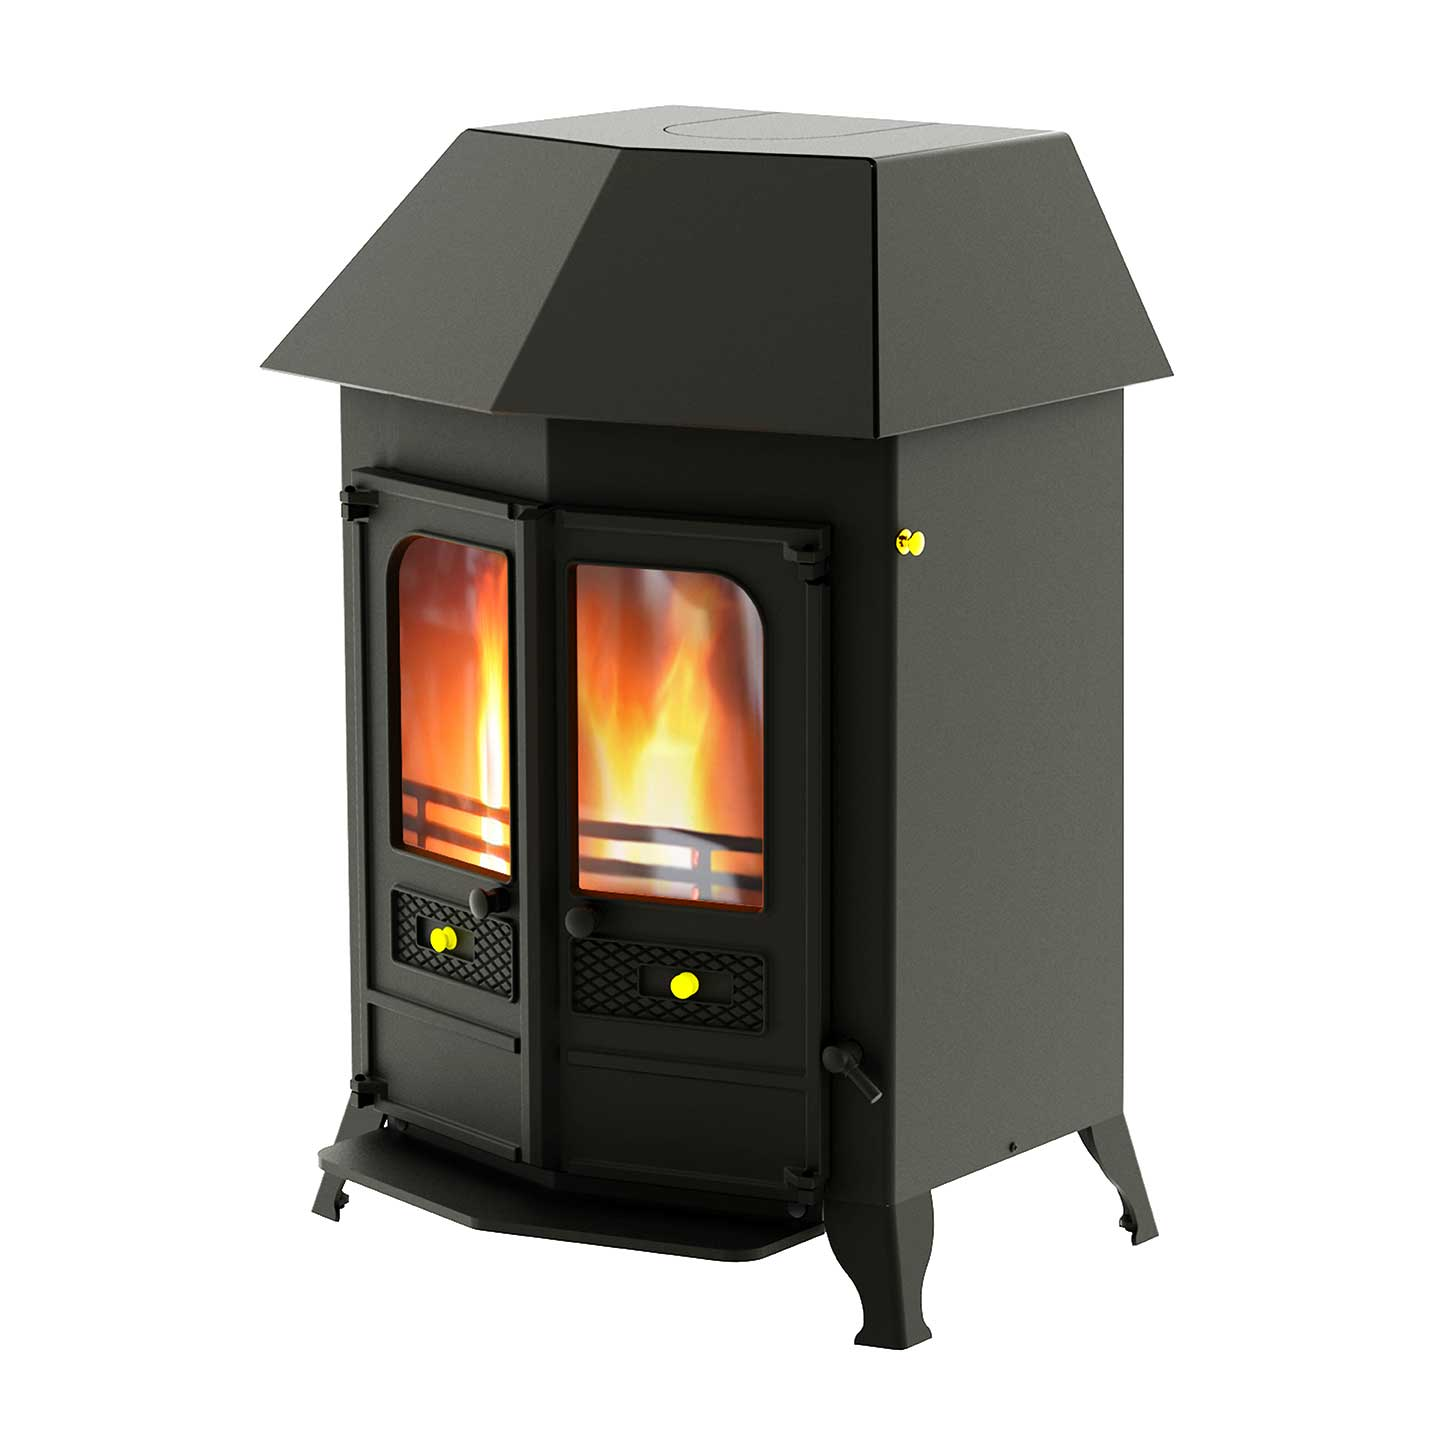 Charnwood Country 16B Wood Burning Boiler Stove Approved